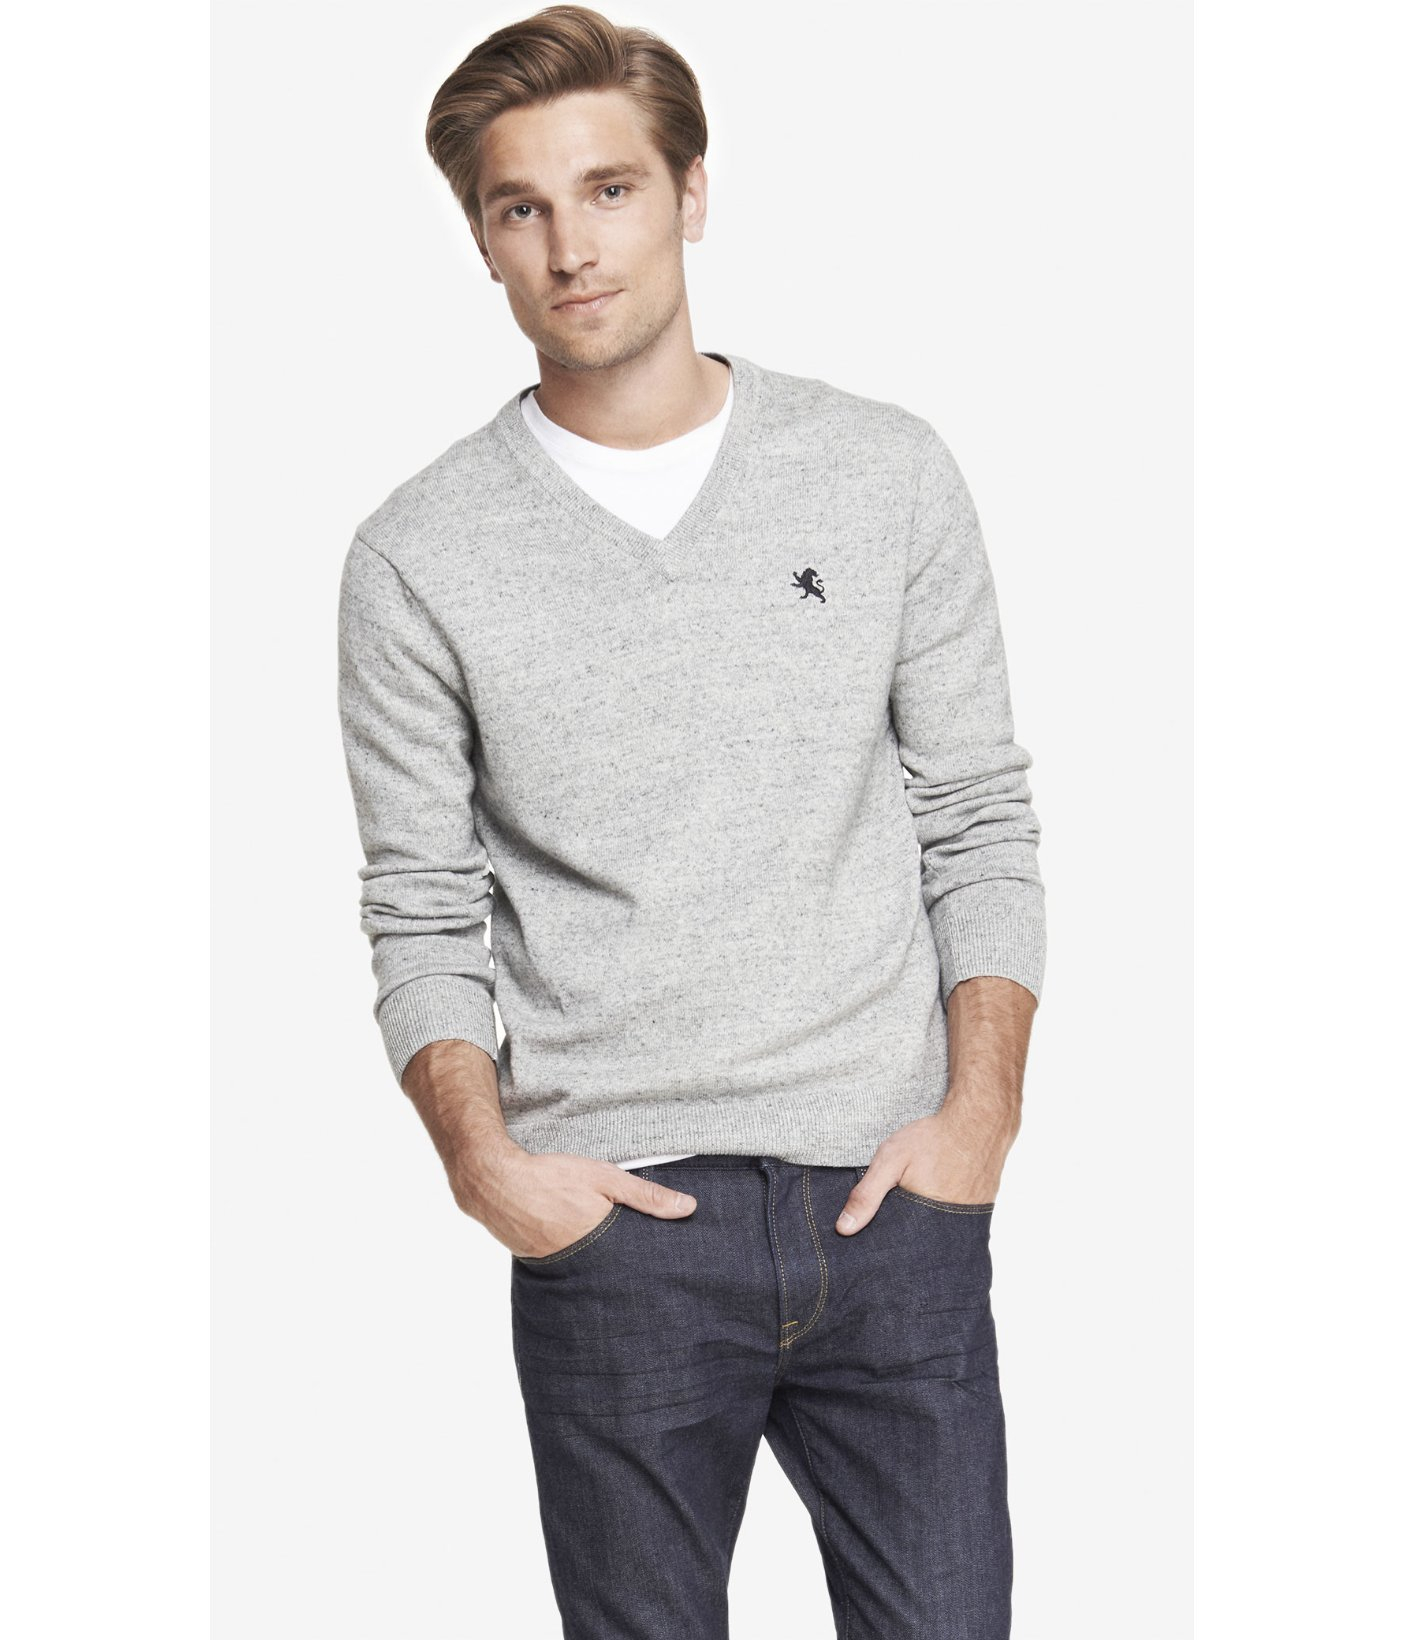 0a1c12e16c6e Lyst - Express Nep Knit Small Lion V-Neck Sweater in Gray for Men